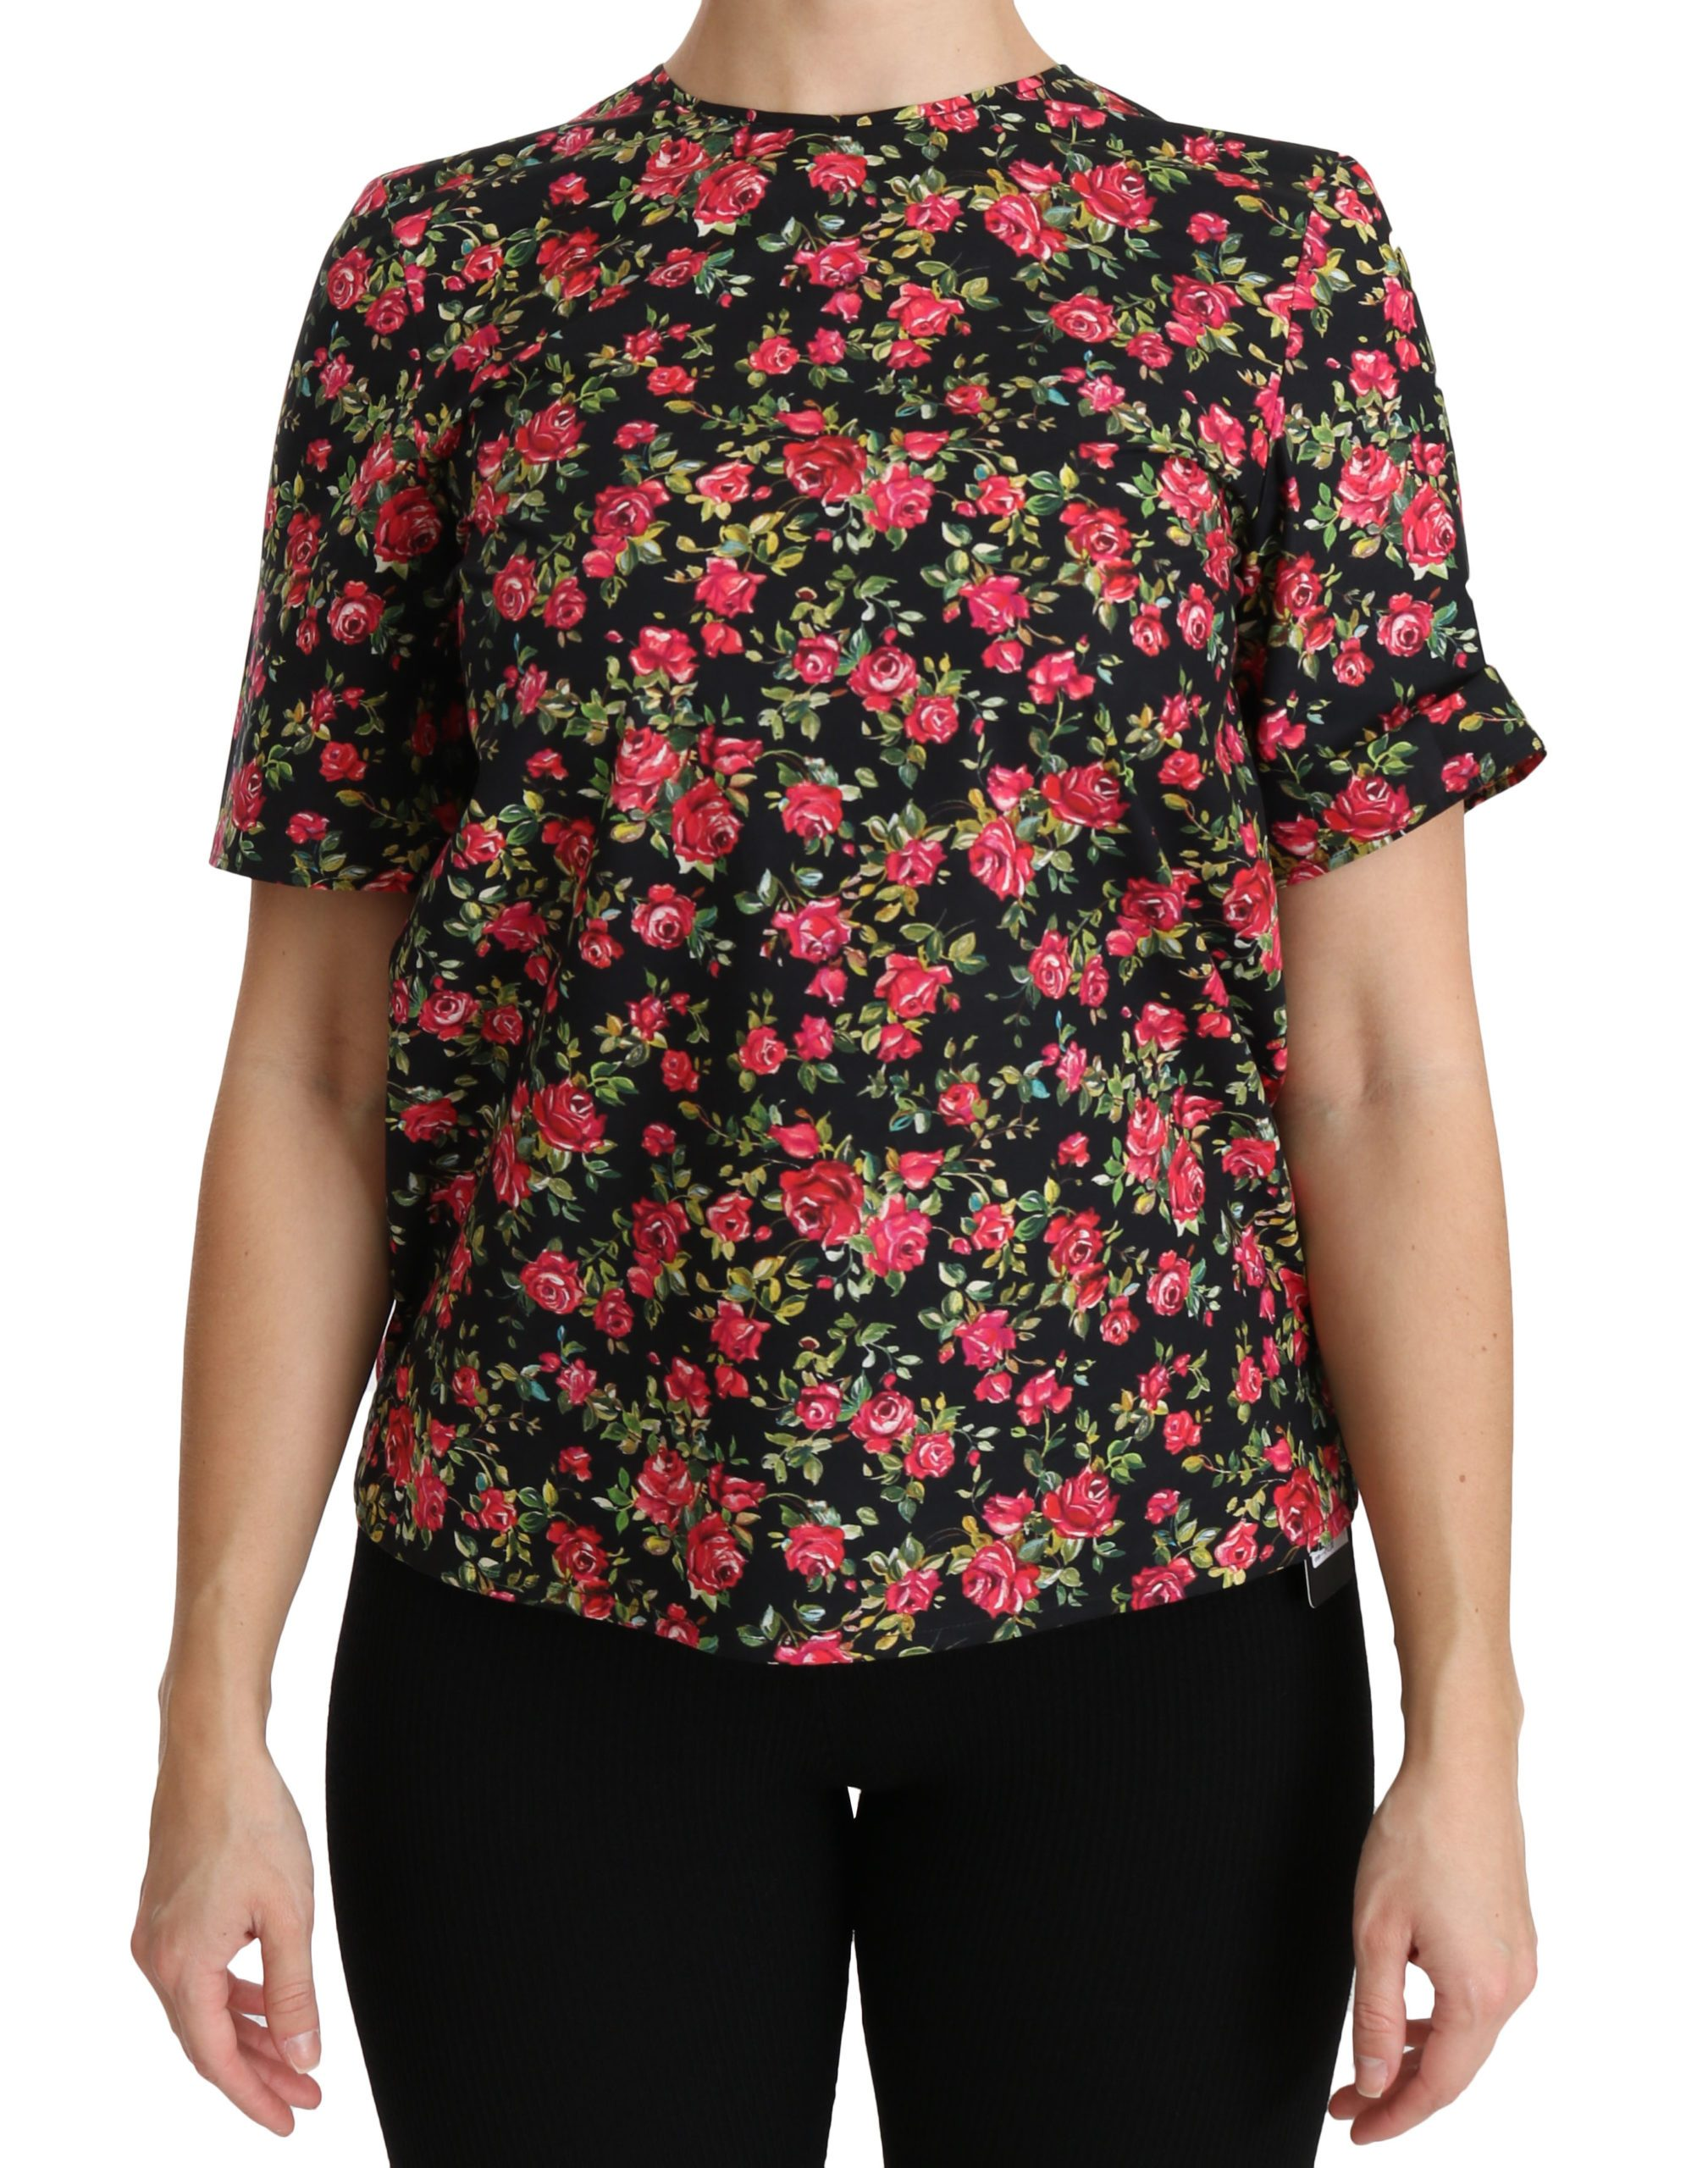 Black Floral Roses Short Sleeve Top Blouse - IT36 | XS